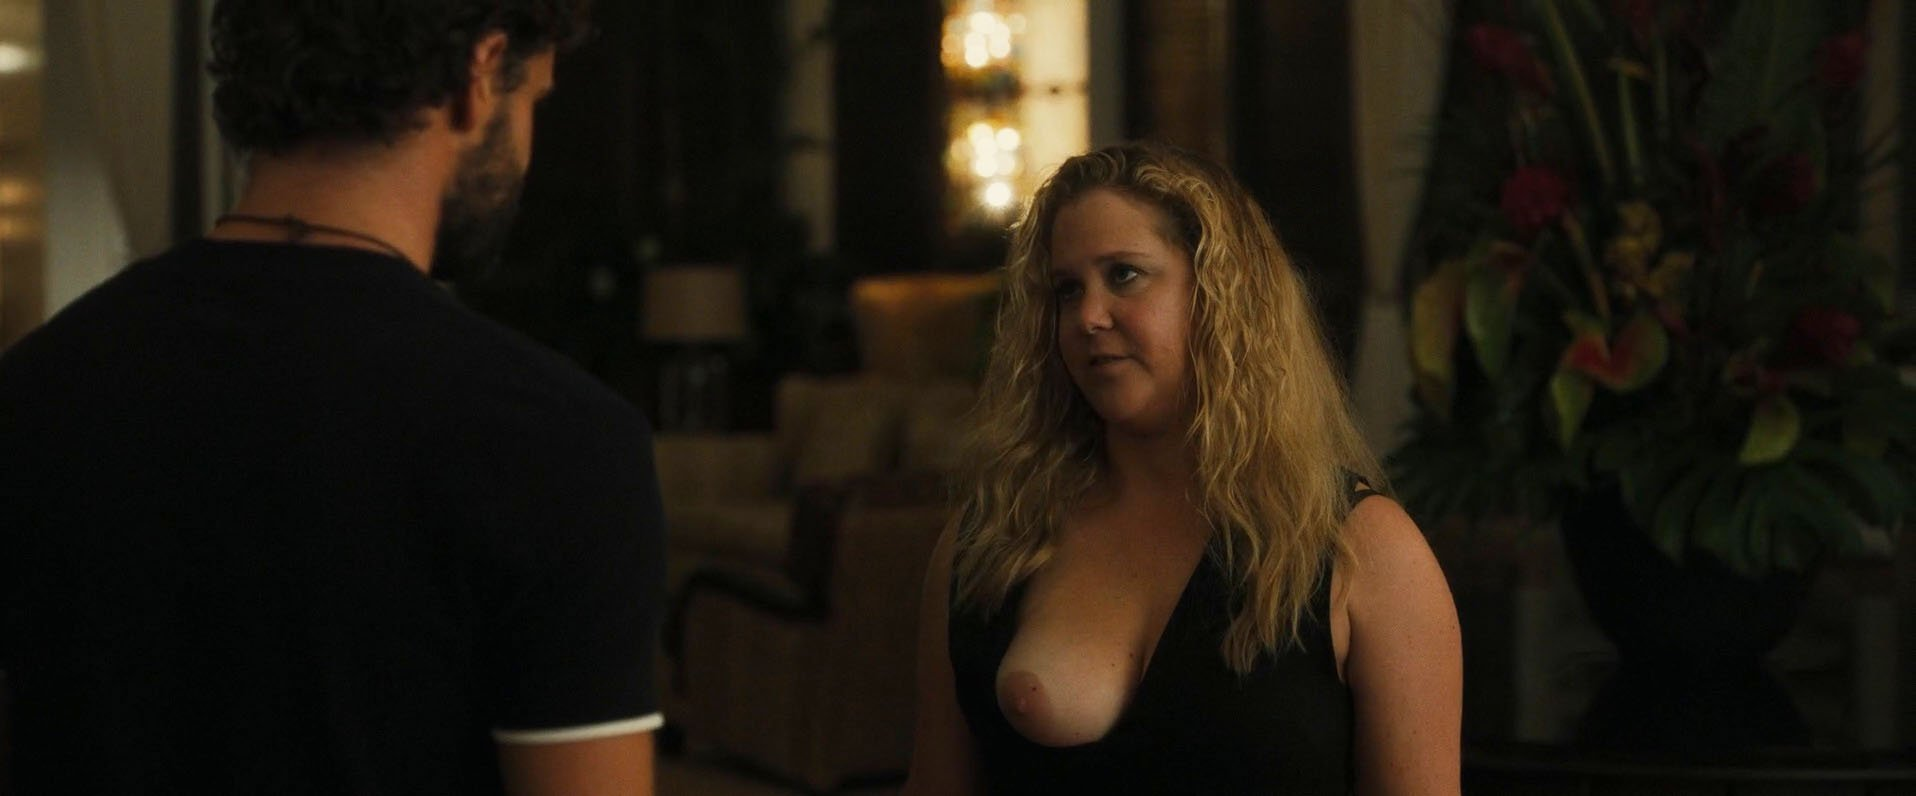 Amy Schumer - Snatched (2017) HD 1080p